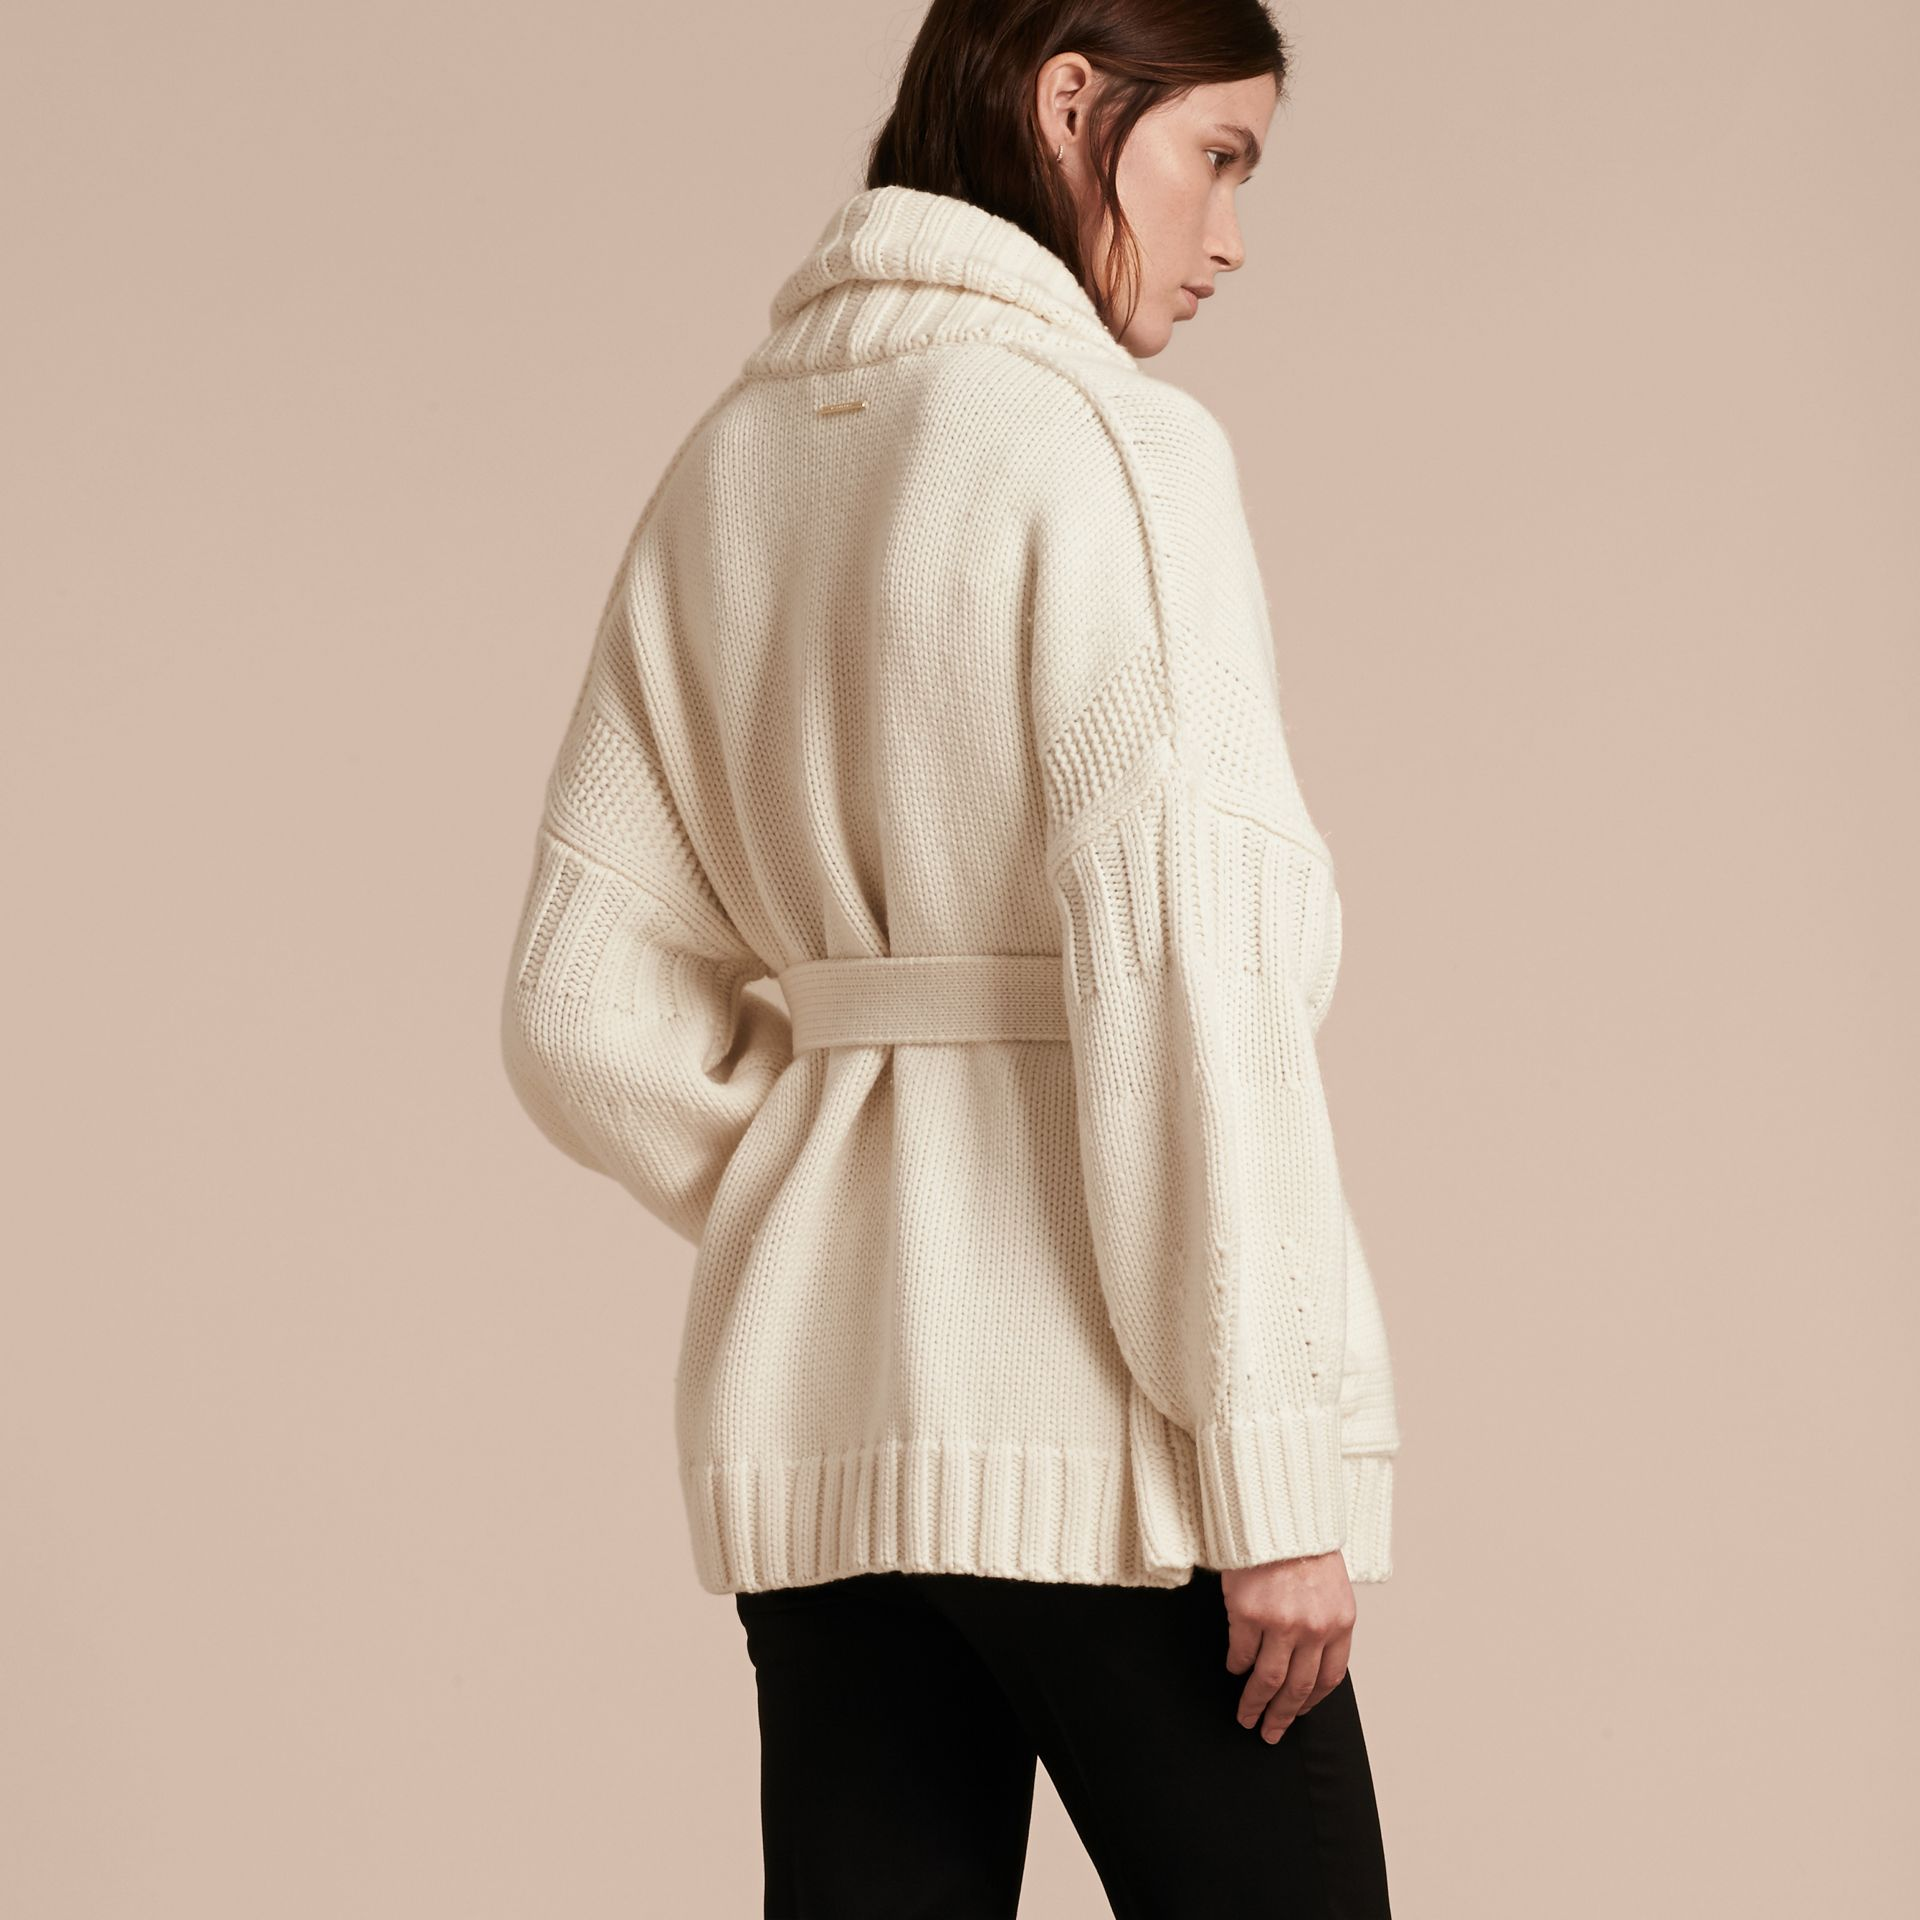 Knitted Wool Cashmere Belted Cardigan Jacket Natural White - gallery image 3